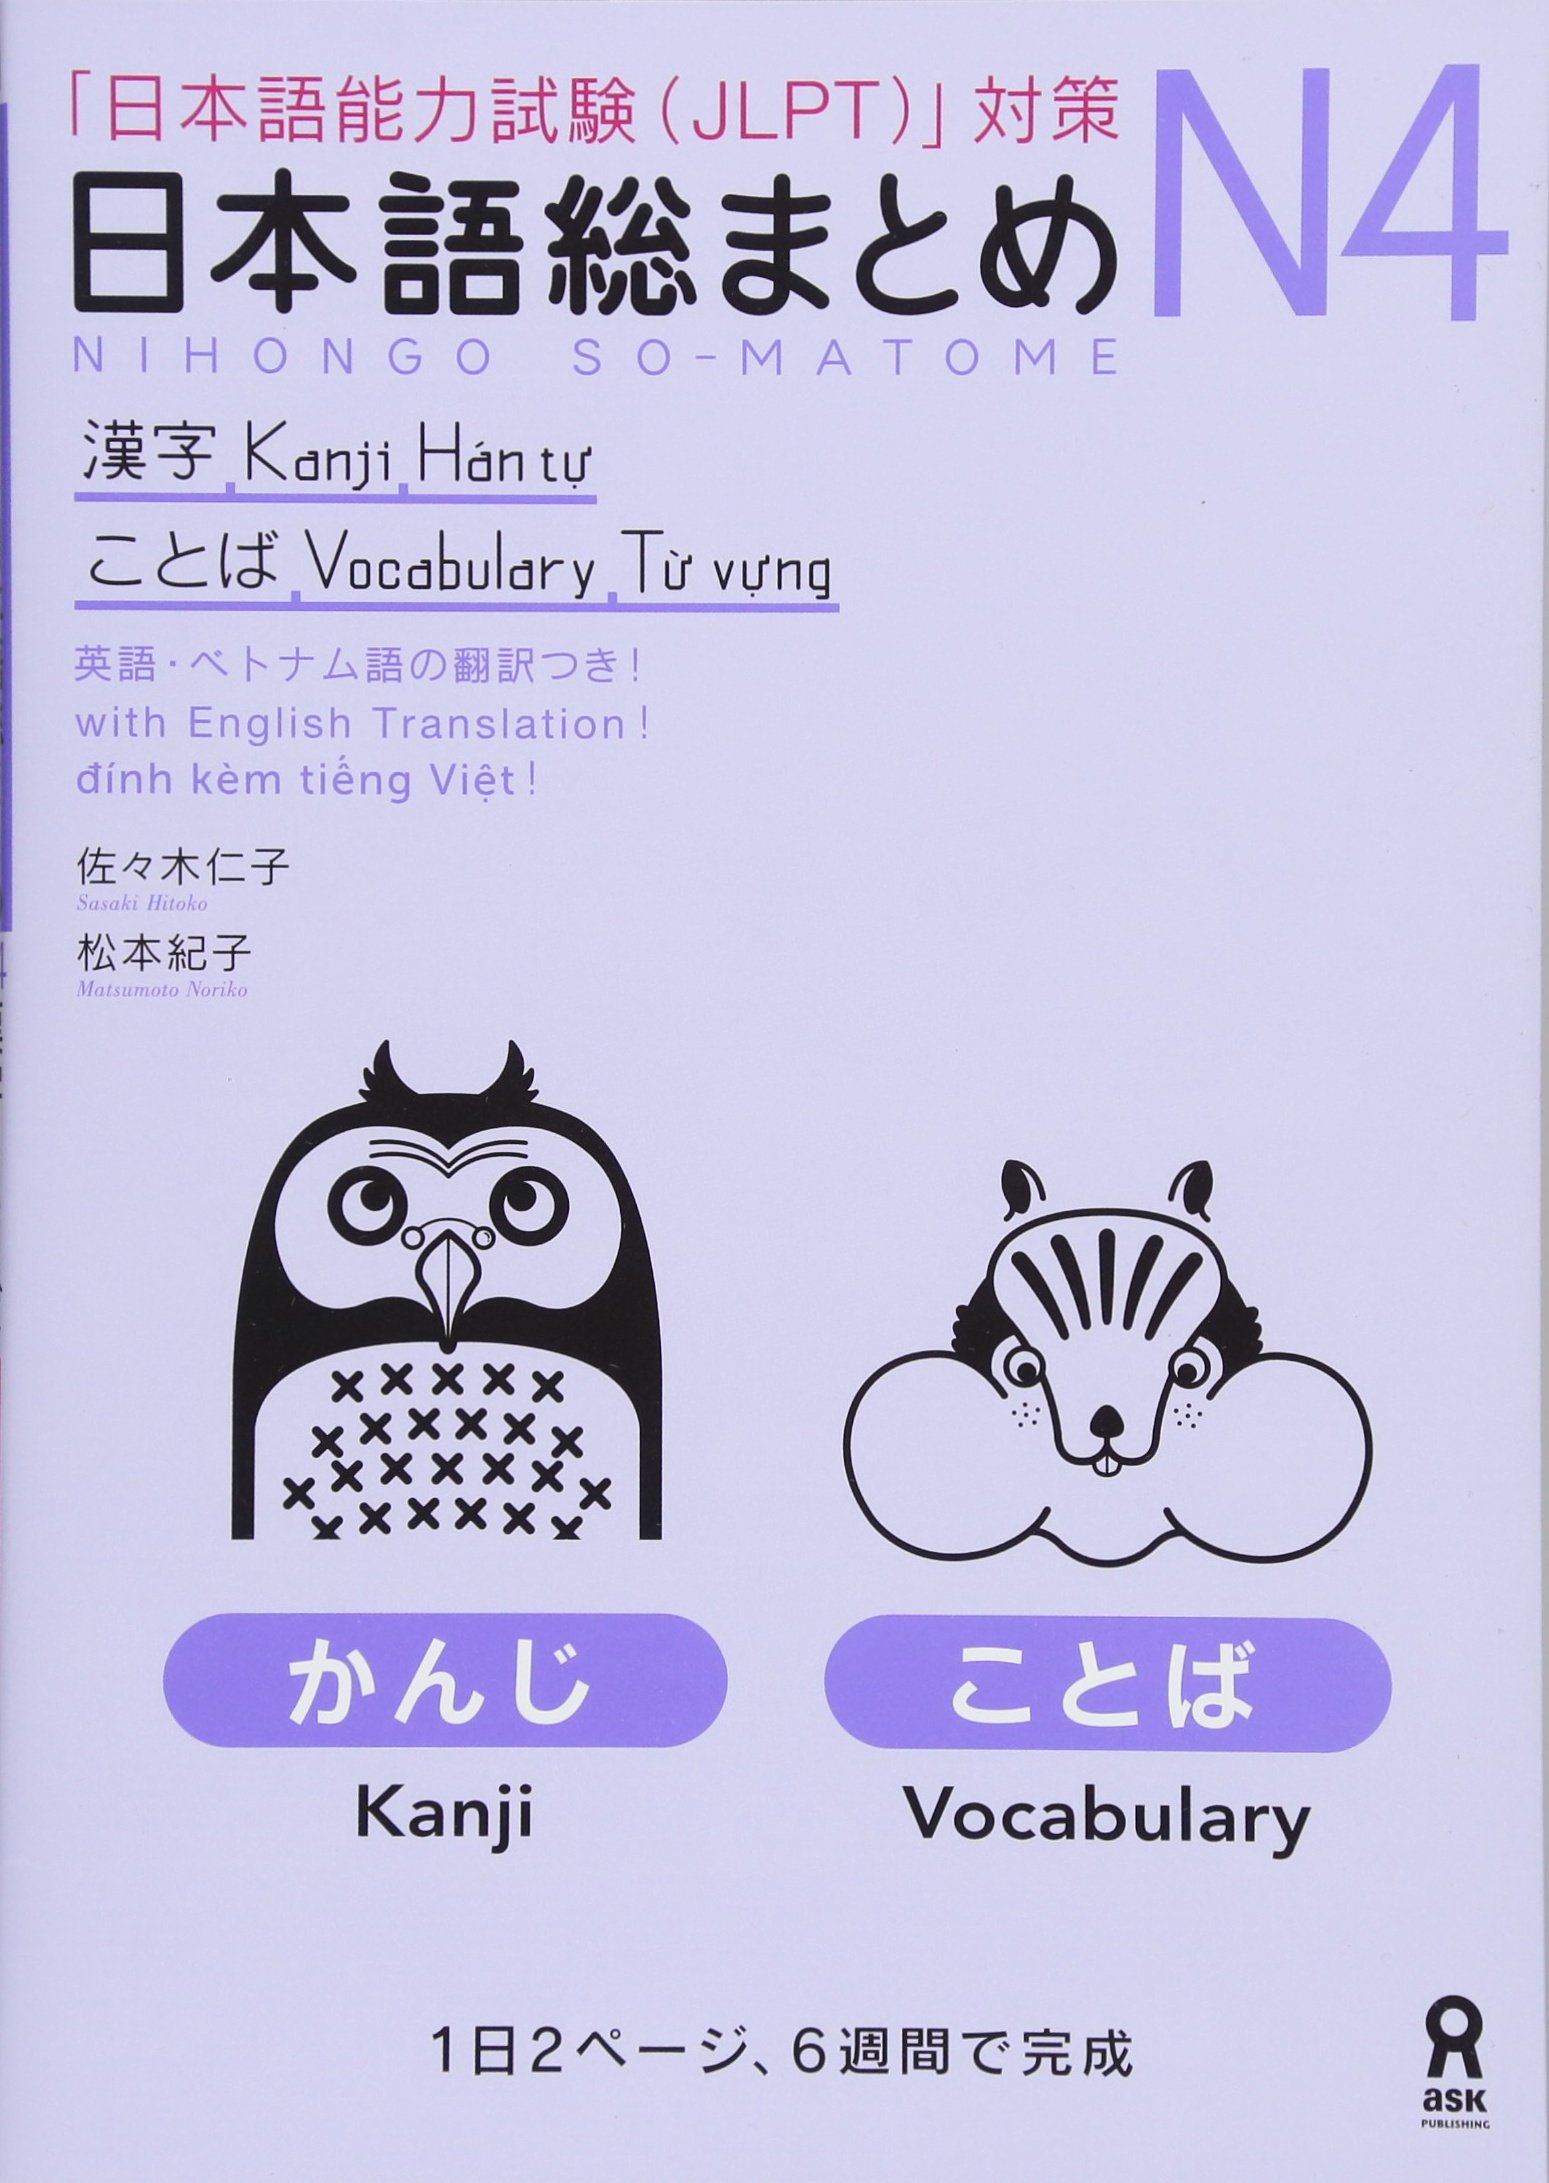 Nihongo So-matome: Essential Practice for the Japanese